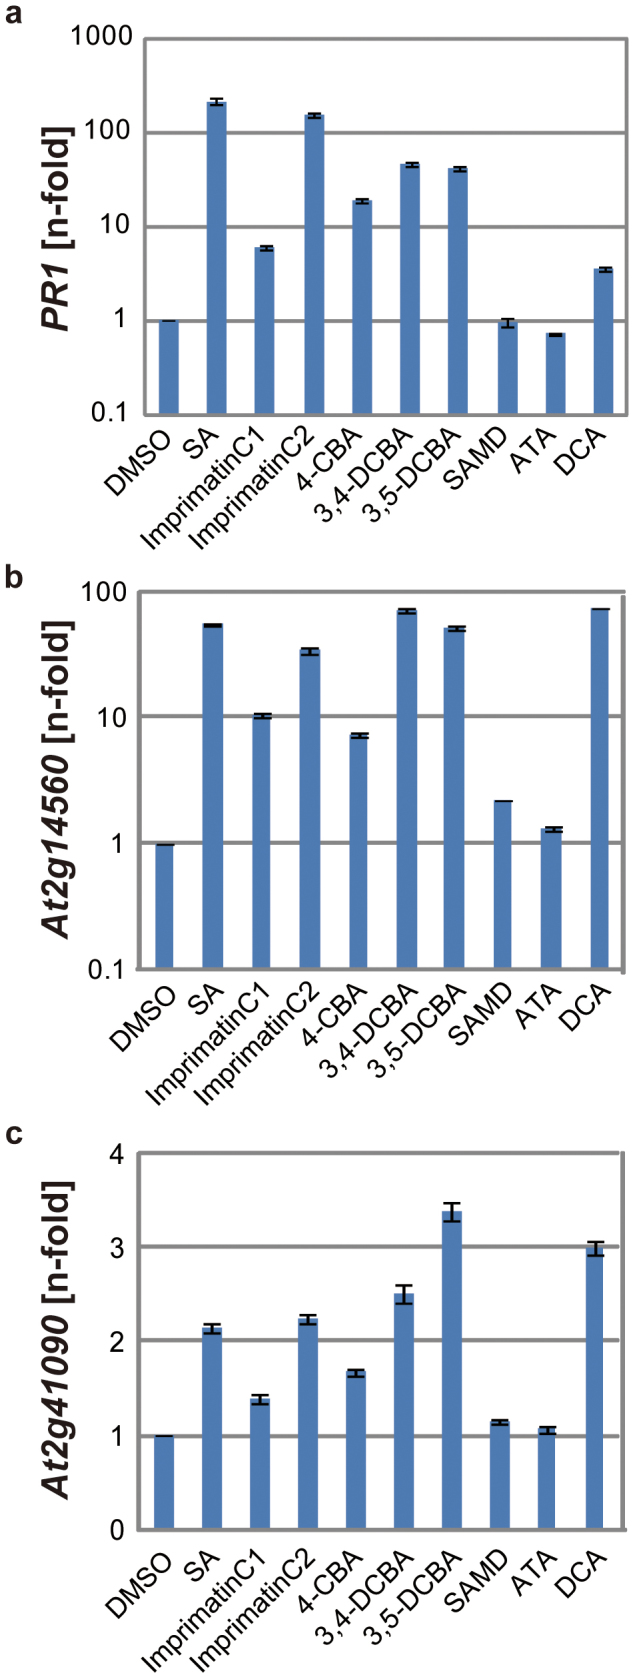 Induction of defence genes by imprimatinC1 and its derivative molecules. The mRNA transcript levels of PR1 (a) , At2g14560 (b) and At2g41090 ( CaBP22 ) (c) were determined by qRT-PCR with cDNAs prepared from 10-day-old Arabidopsis seedlings soaked in liquid media containing 100 µM concentrations of the experimental compounds for 24 hours. The expression values were normalised to Actin2 as an internal standard. These results are representative of three independent replicates.